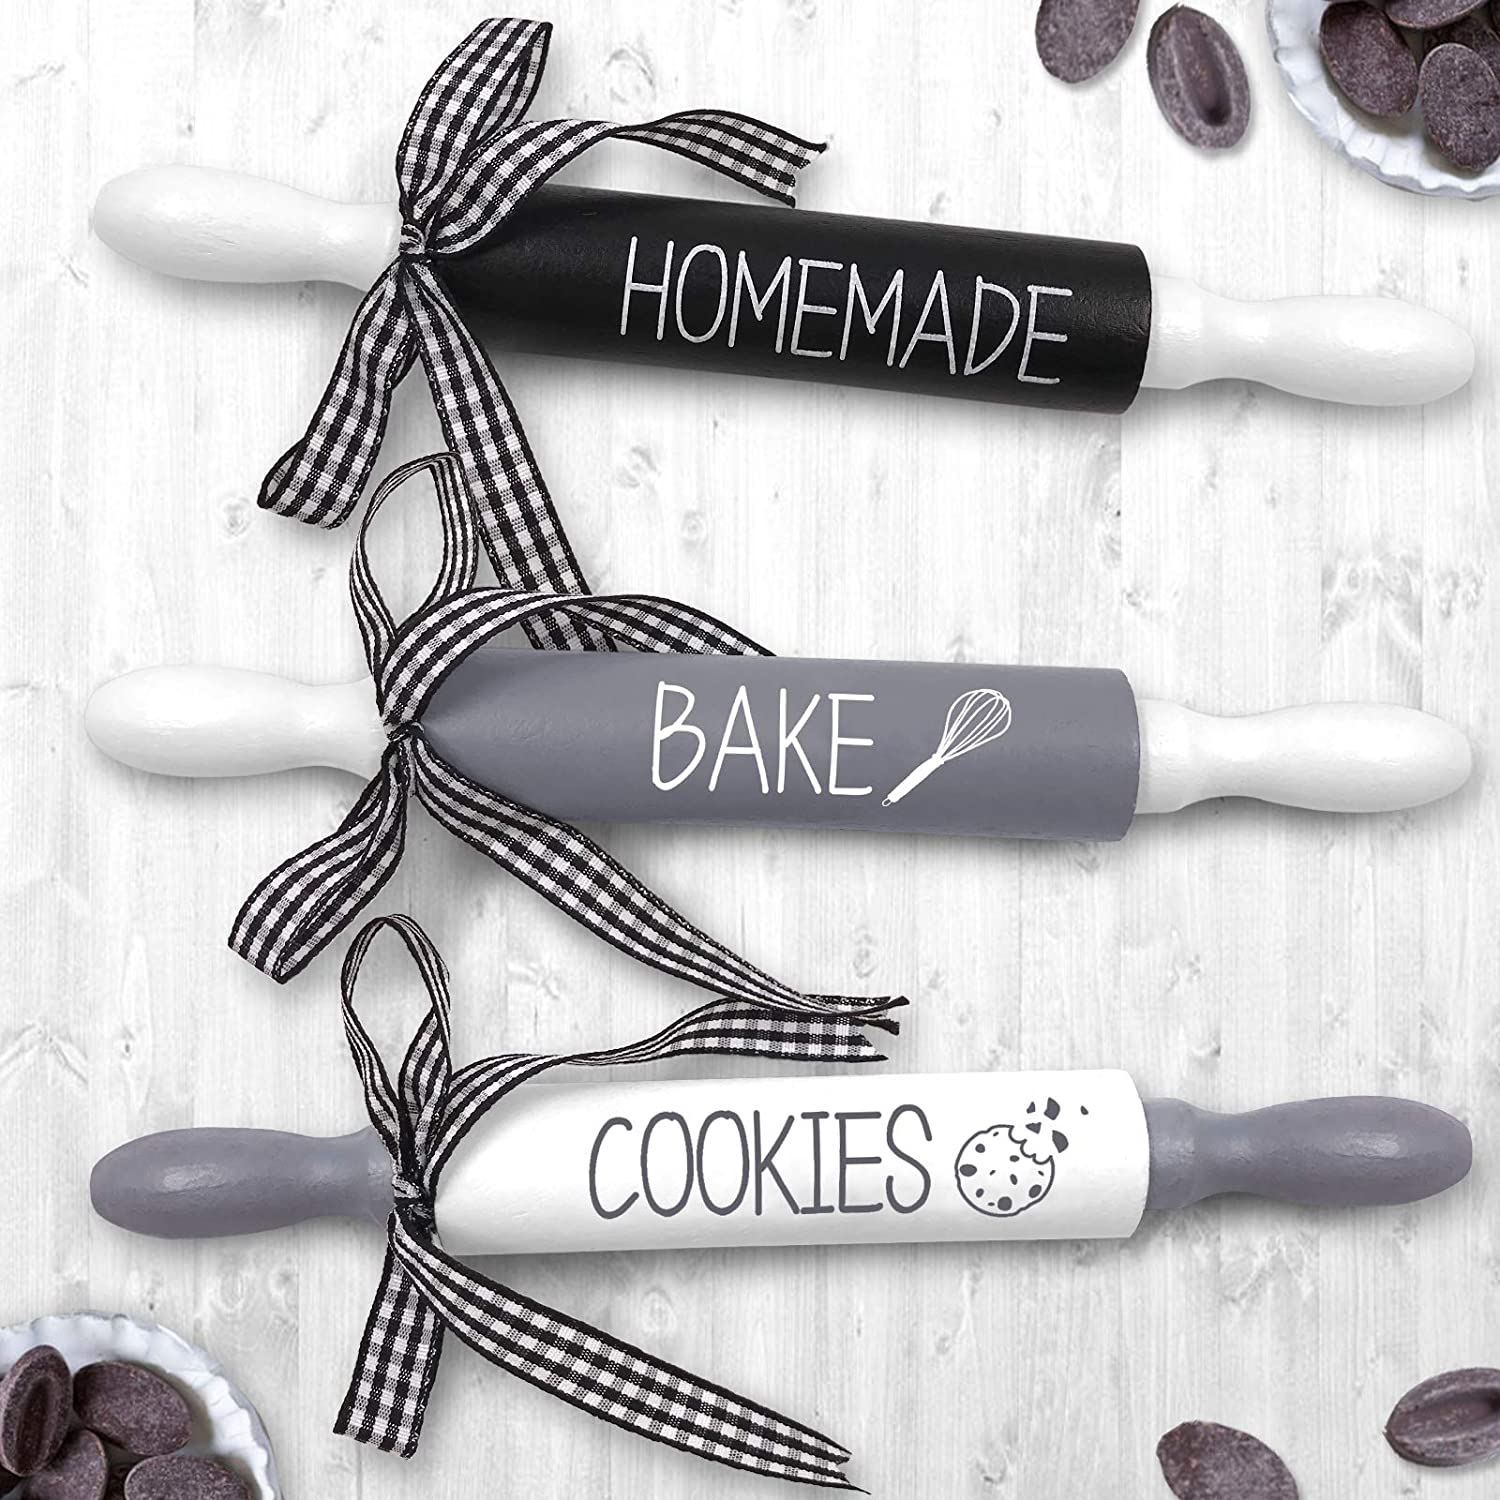 Bake Mini Rolling Pins - Wooden Decorative Favors Kitchen Farmhouse Tiered Tray Decor Set of 3 Rae Dunn Inspired Decoration Homemade Bake Cookies